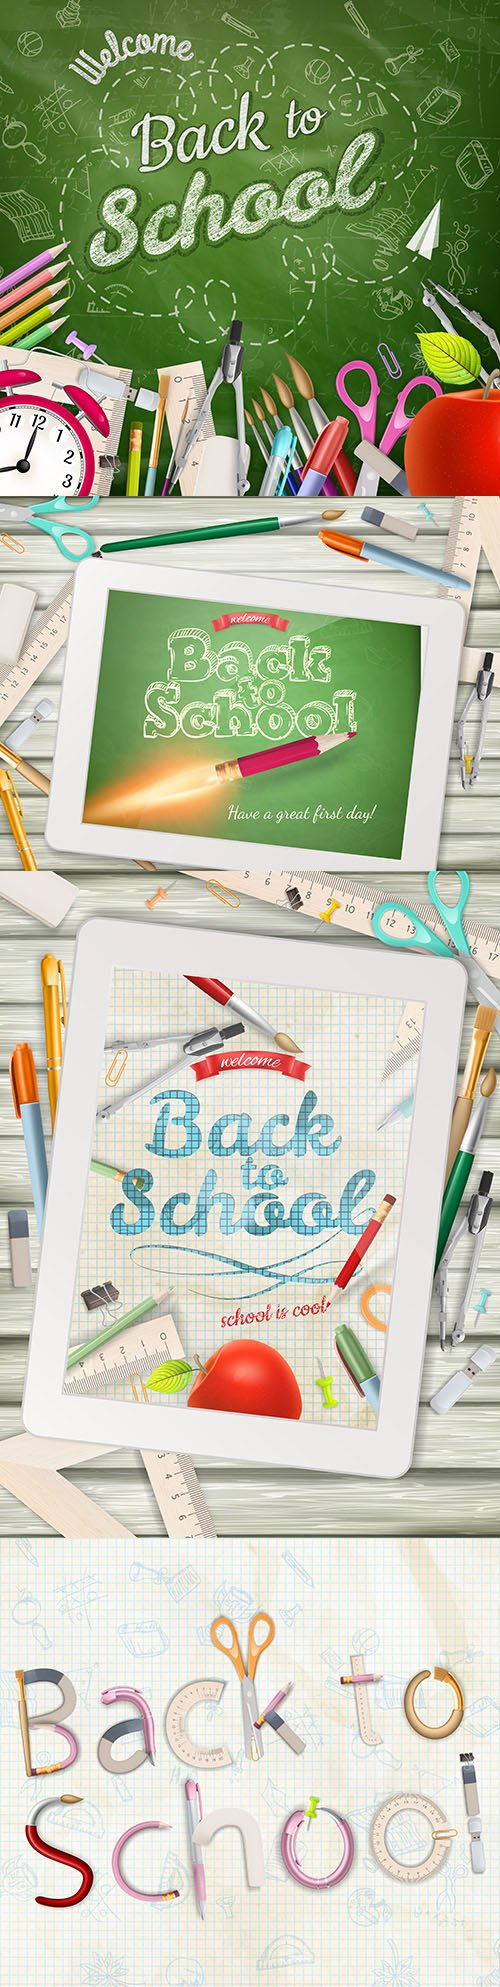 Back to school and accessories collection illustration 42